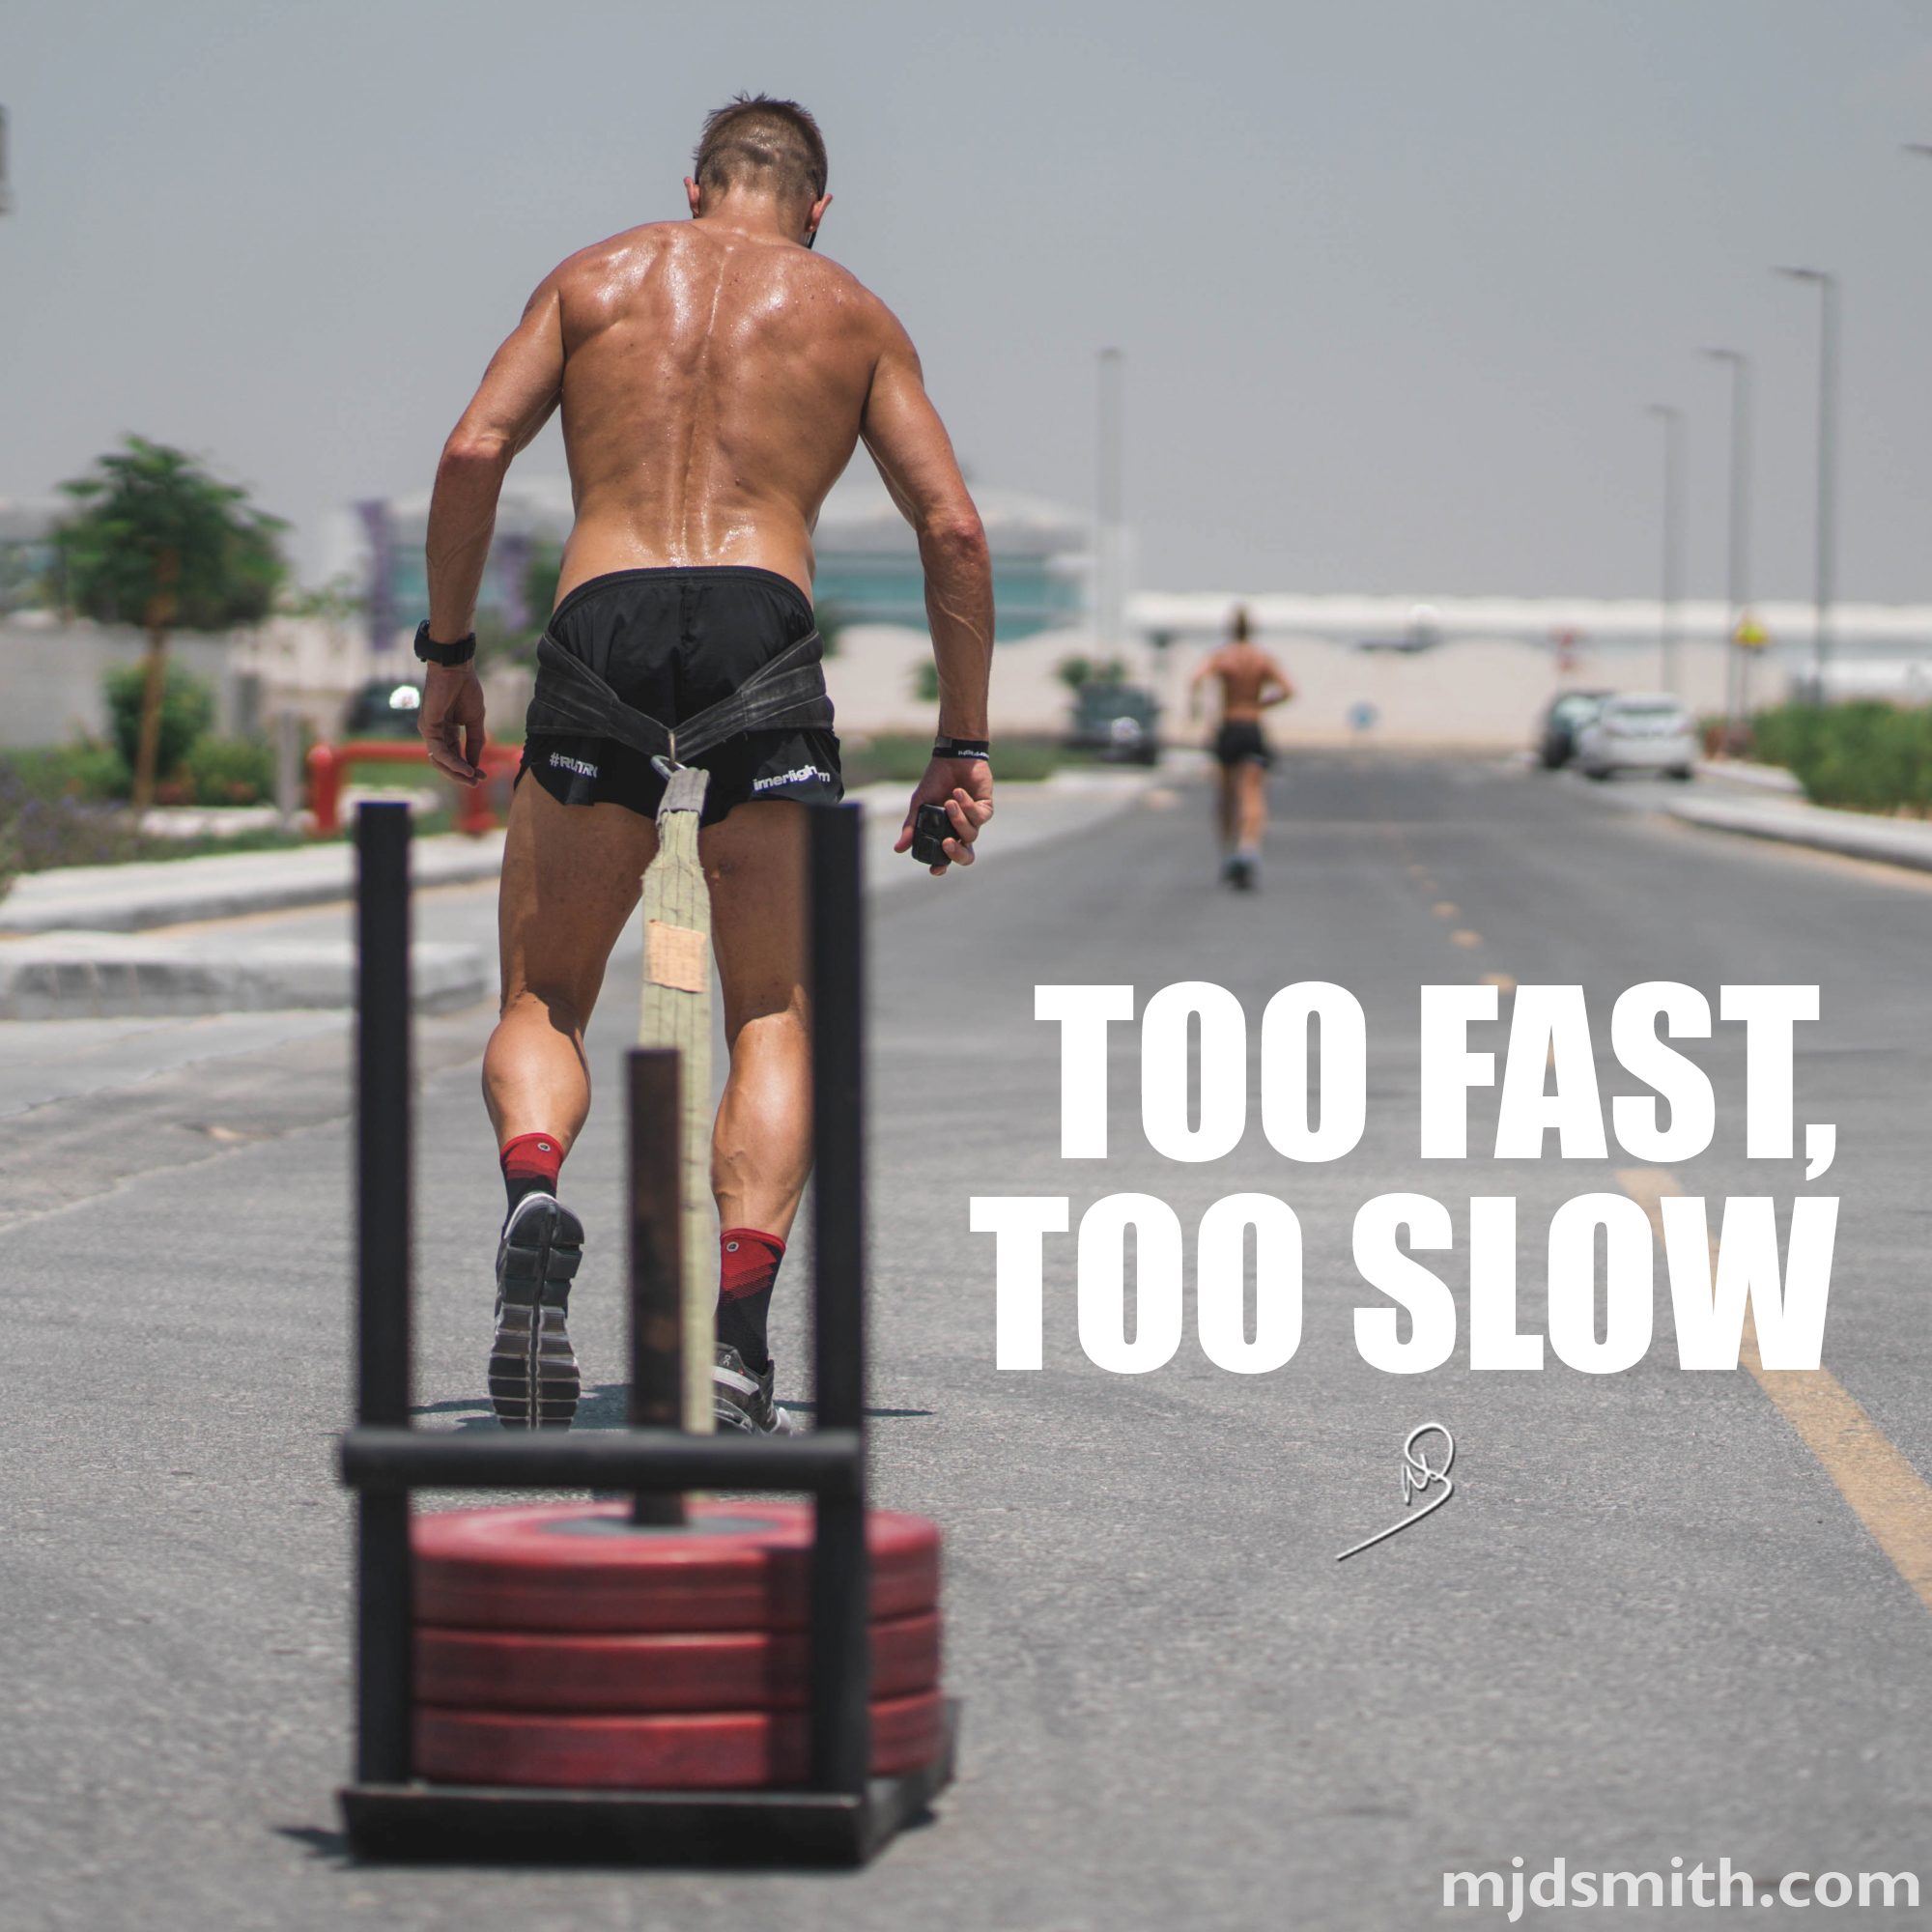 Too fast, too slow